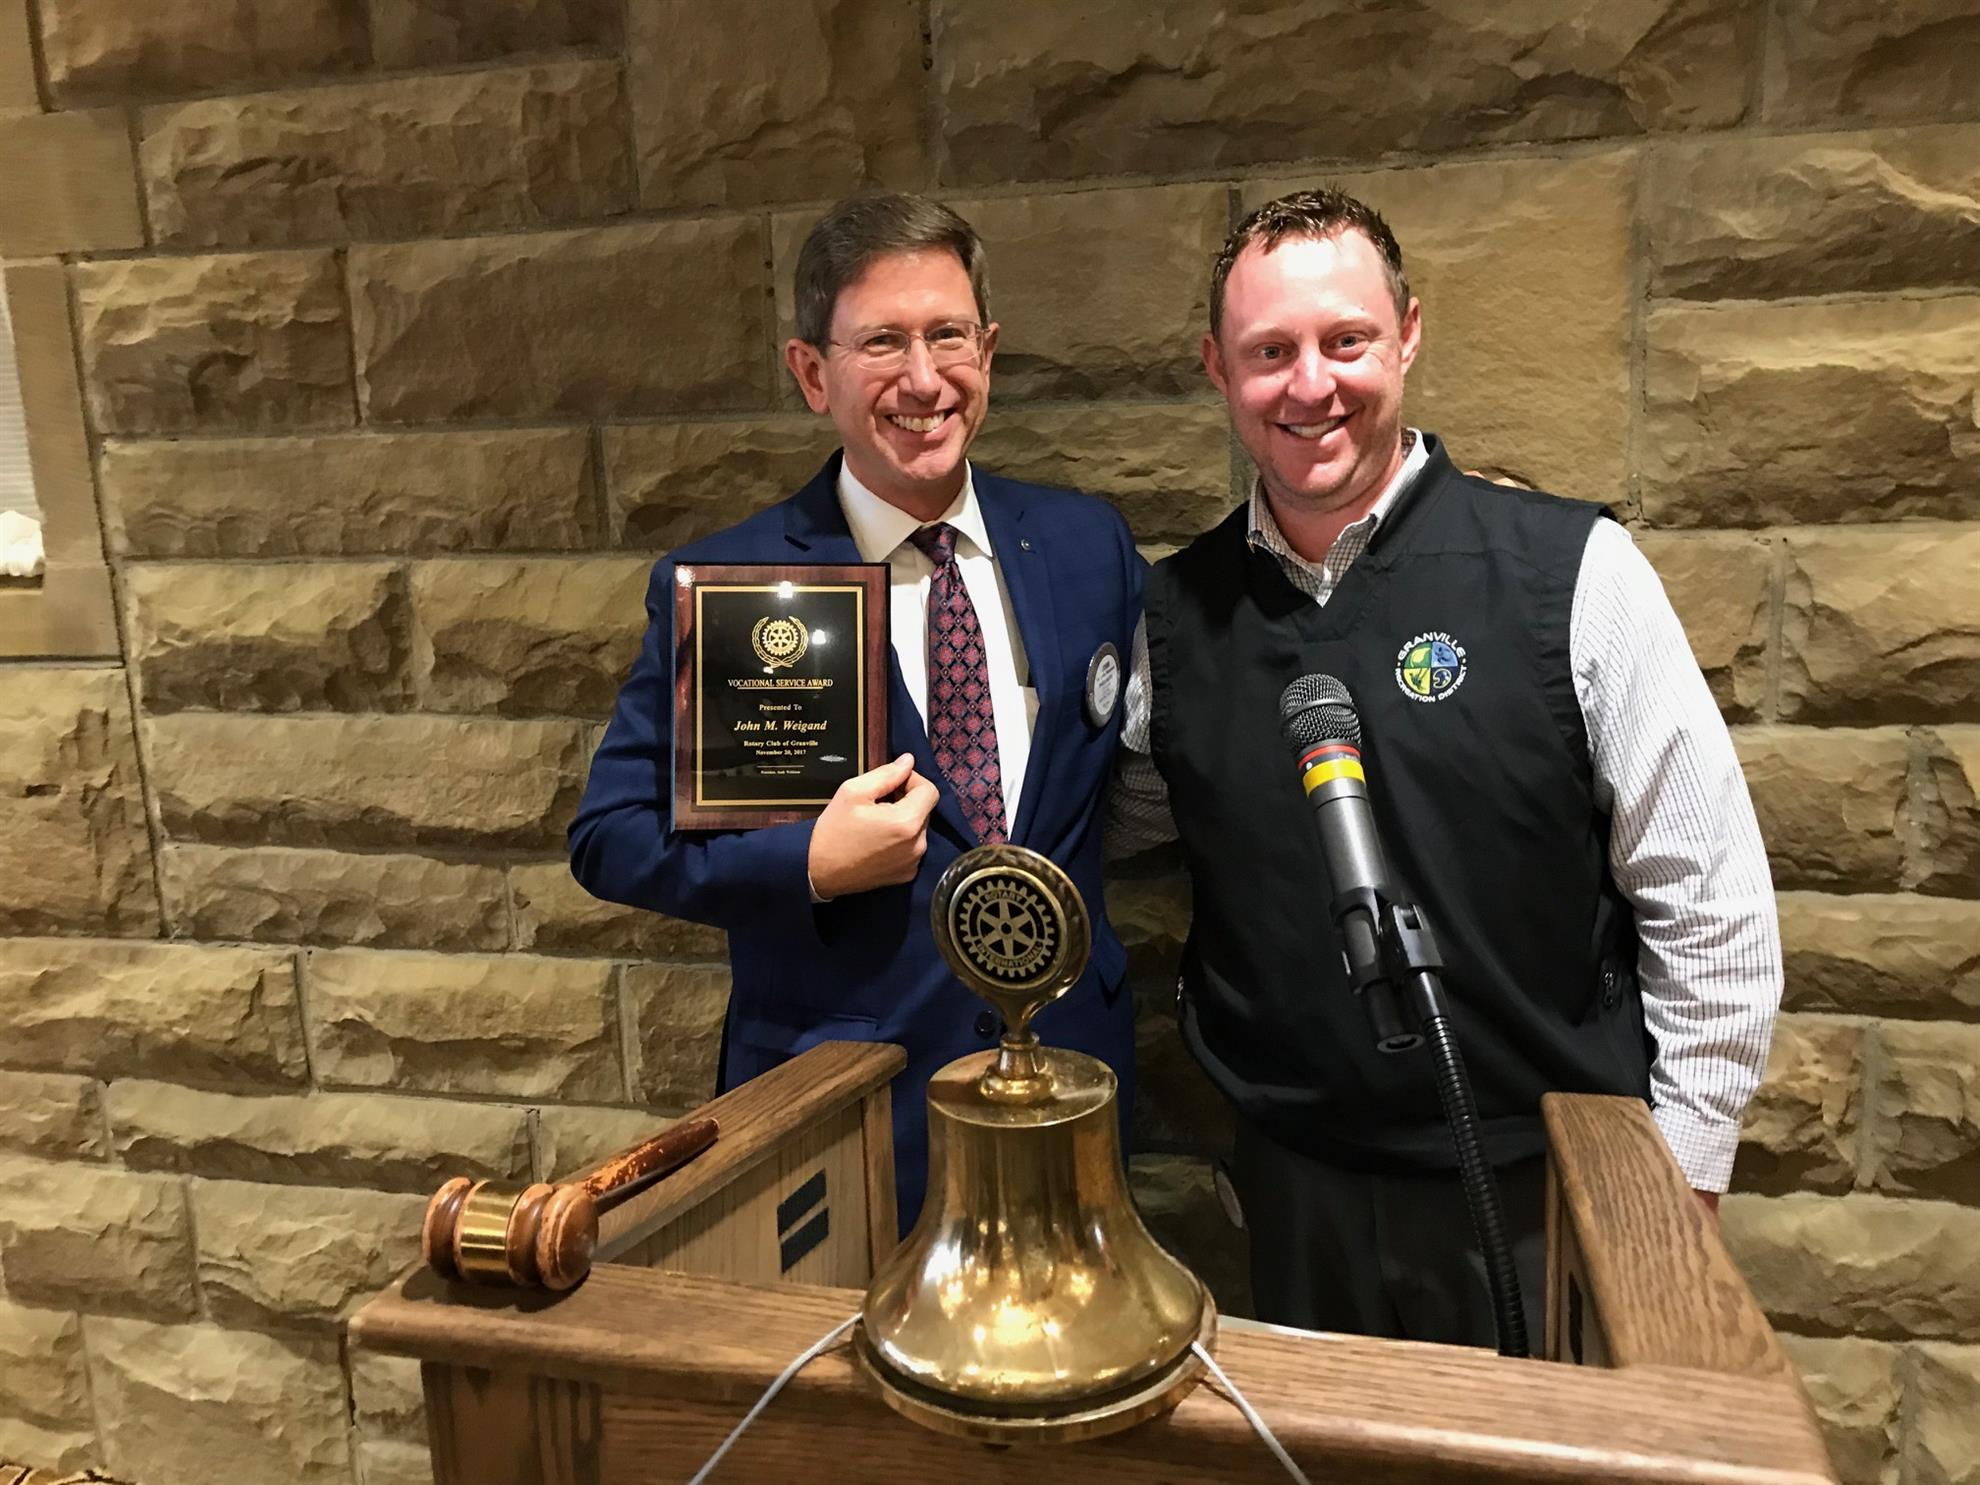 Rotary president Andy Wildman presents the Vocational Service Award to Dr. John Weigand